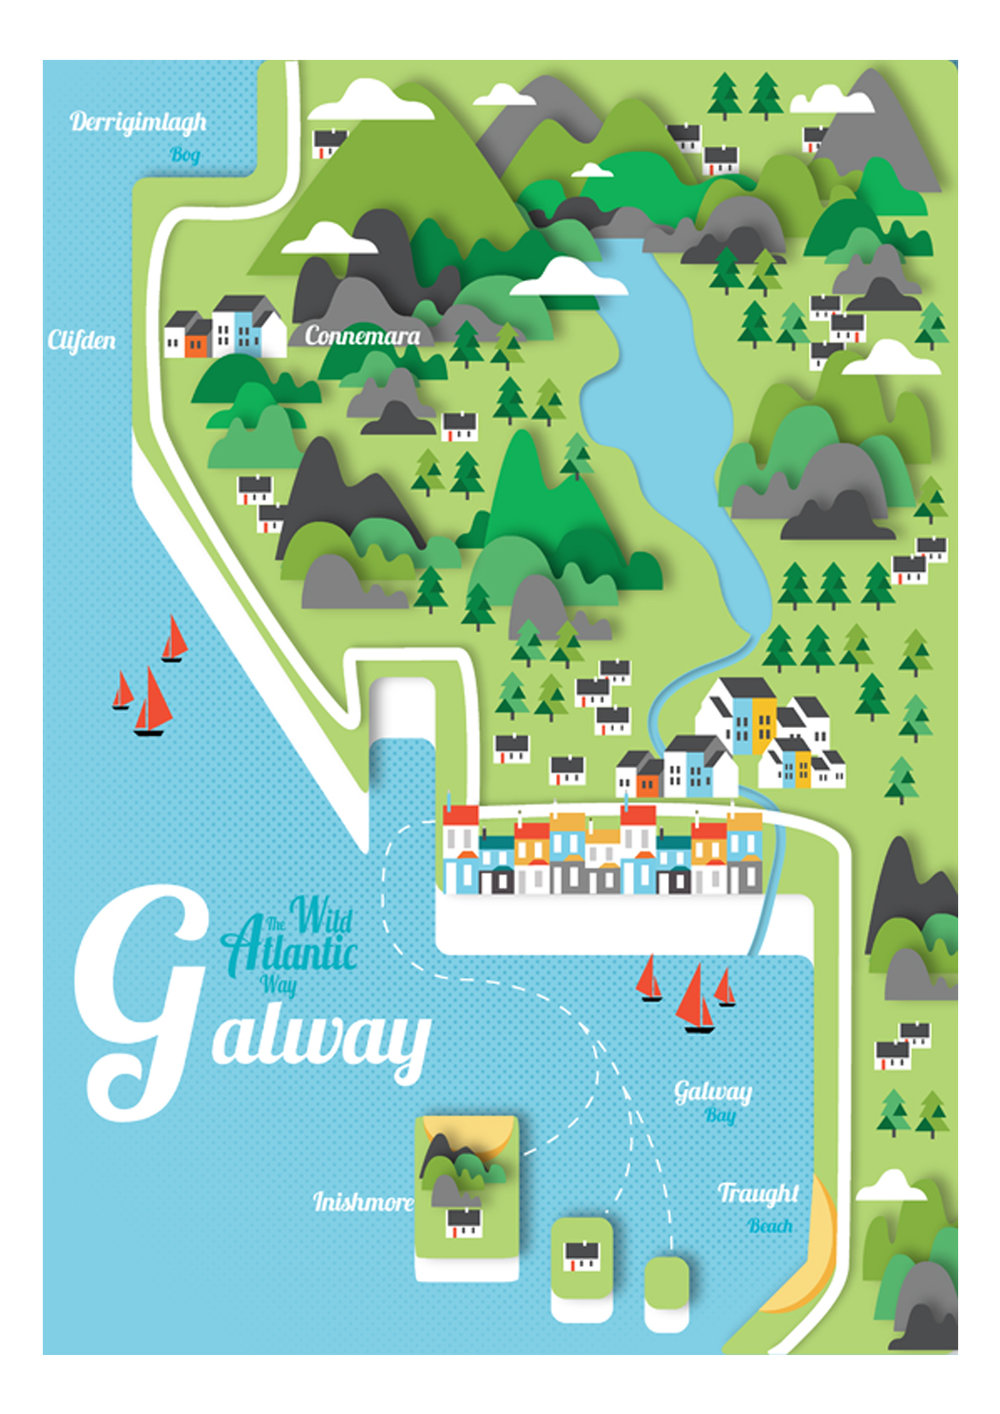 Reddin designs illustration map of Galway.jpg